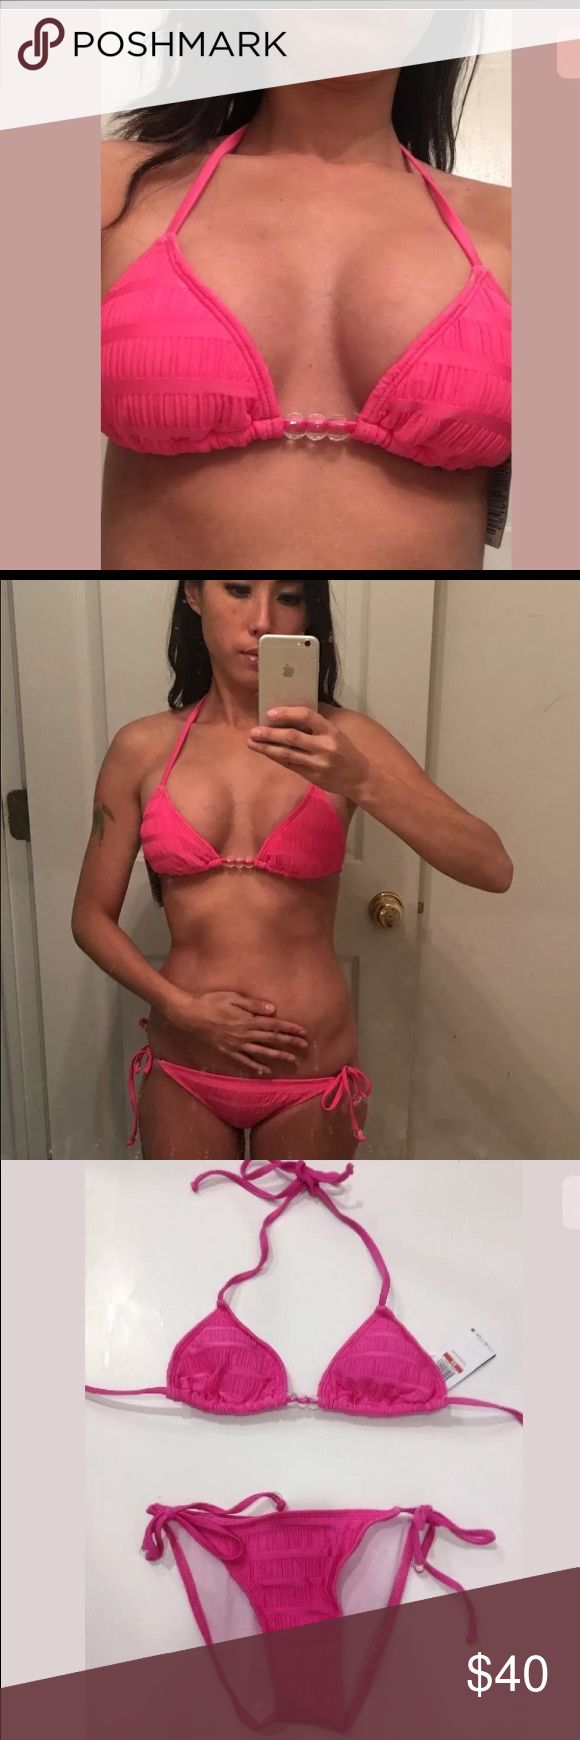 NWT Guess Pink Pucker Up Bikini Set XS Super sexy candy pink bikini set by Guess done in like a textured fabric. Triangle top has light pads you can use or take off. The bottoms tie on the Side and has Guess logo on bottoms done with crystals. Size is XS brand new with tags. Guess Swim Bikinis